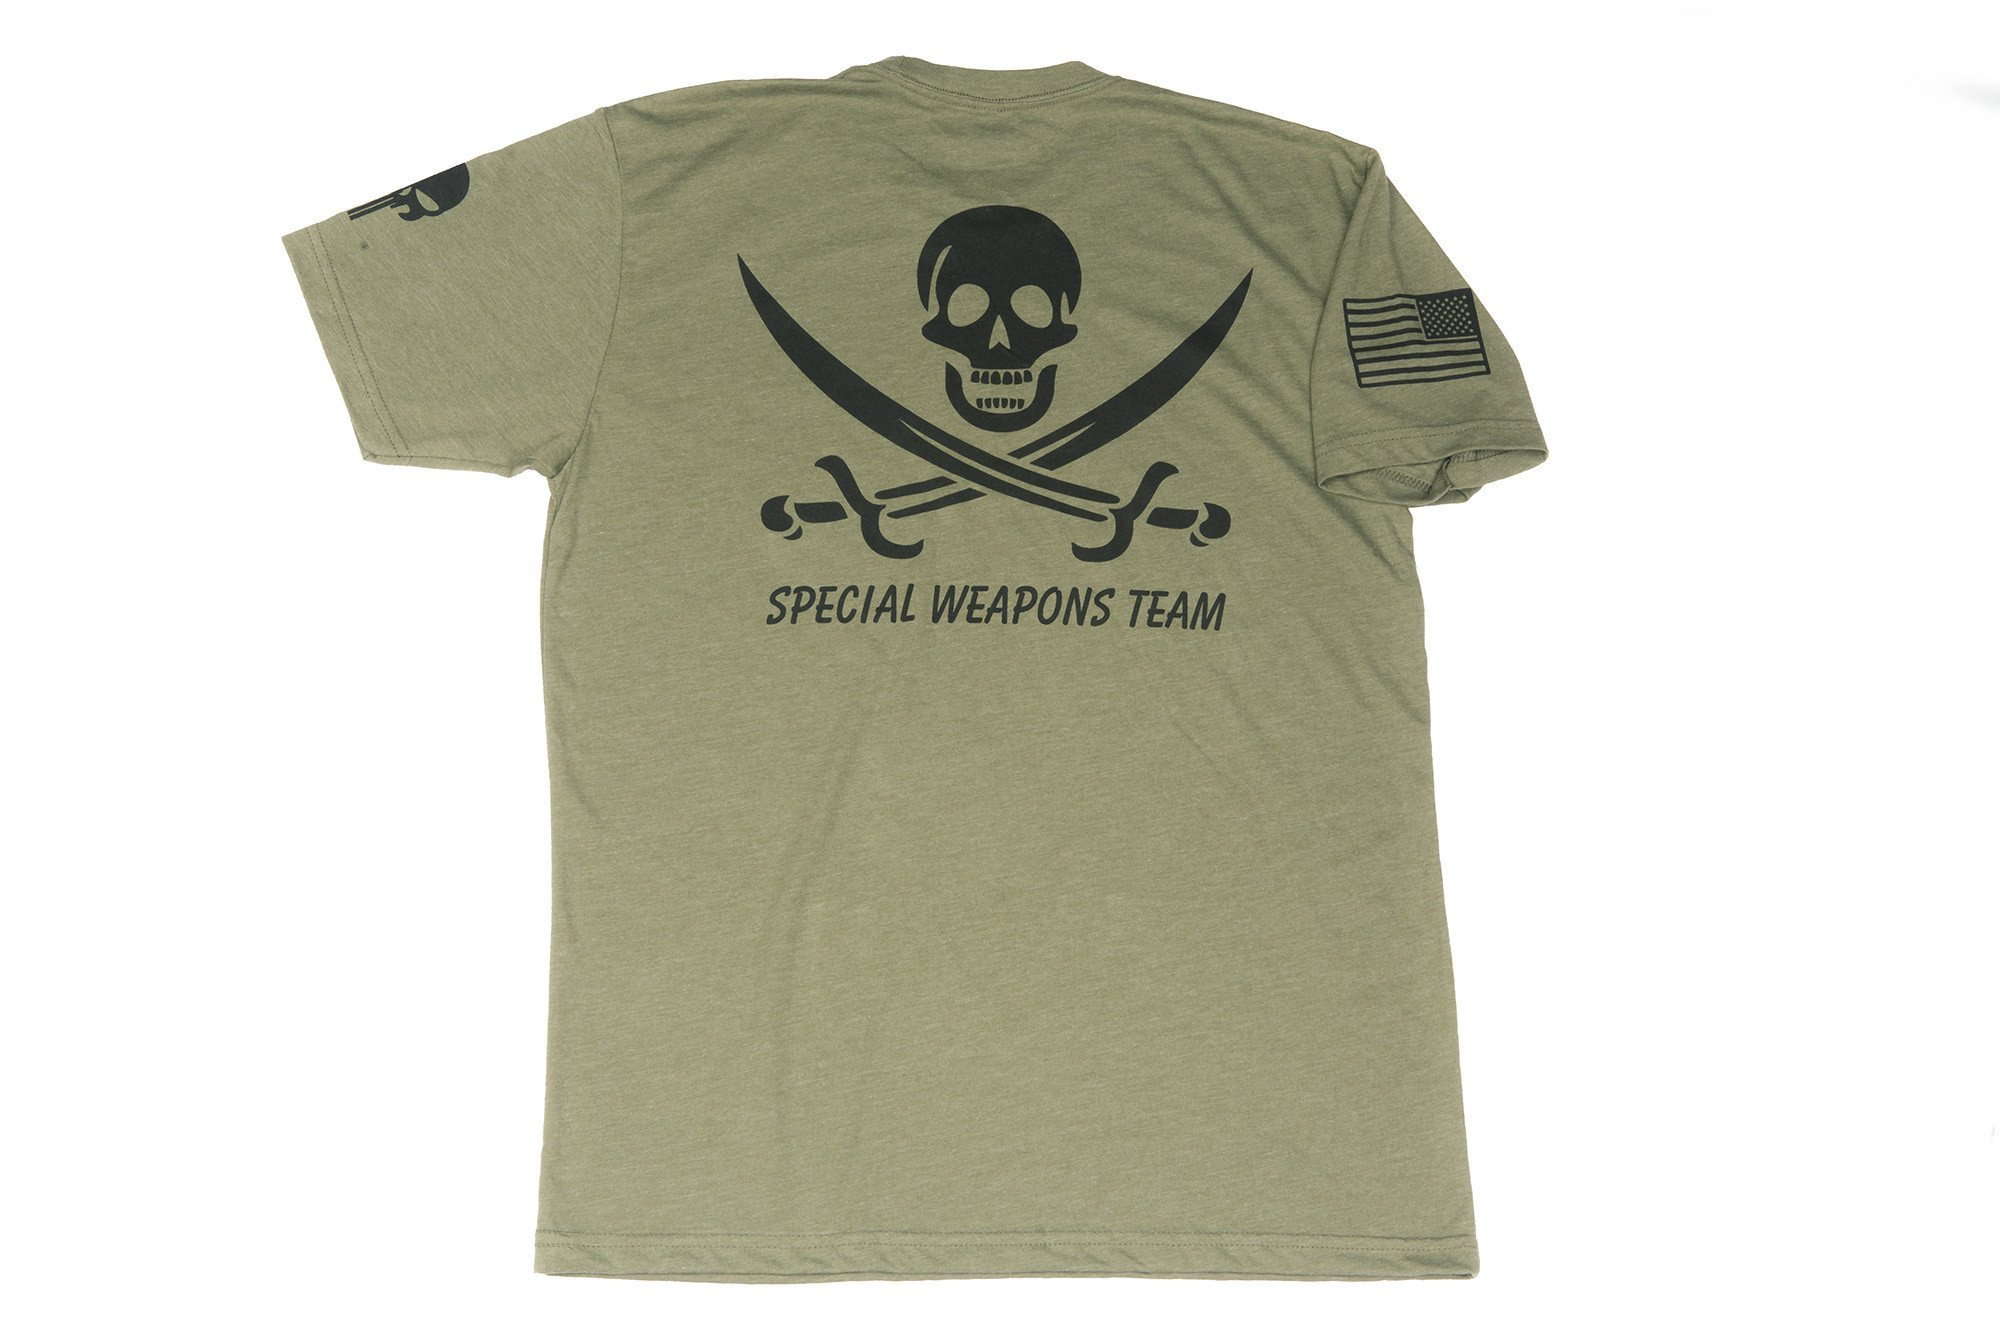 Special Weapons Team